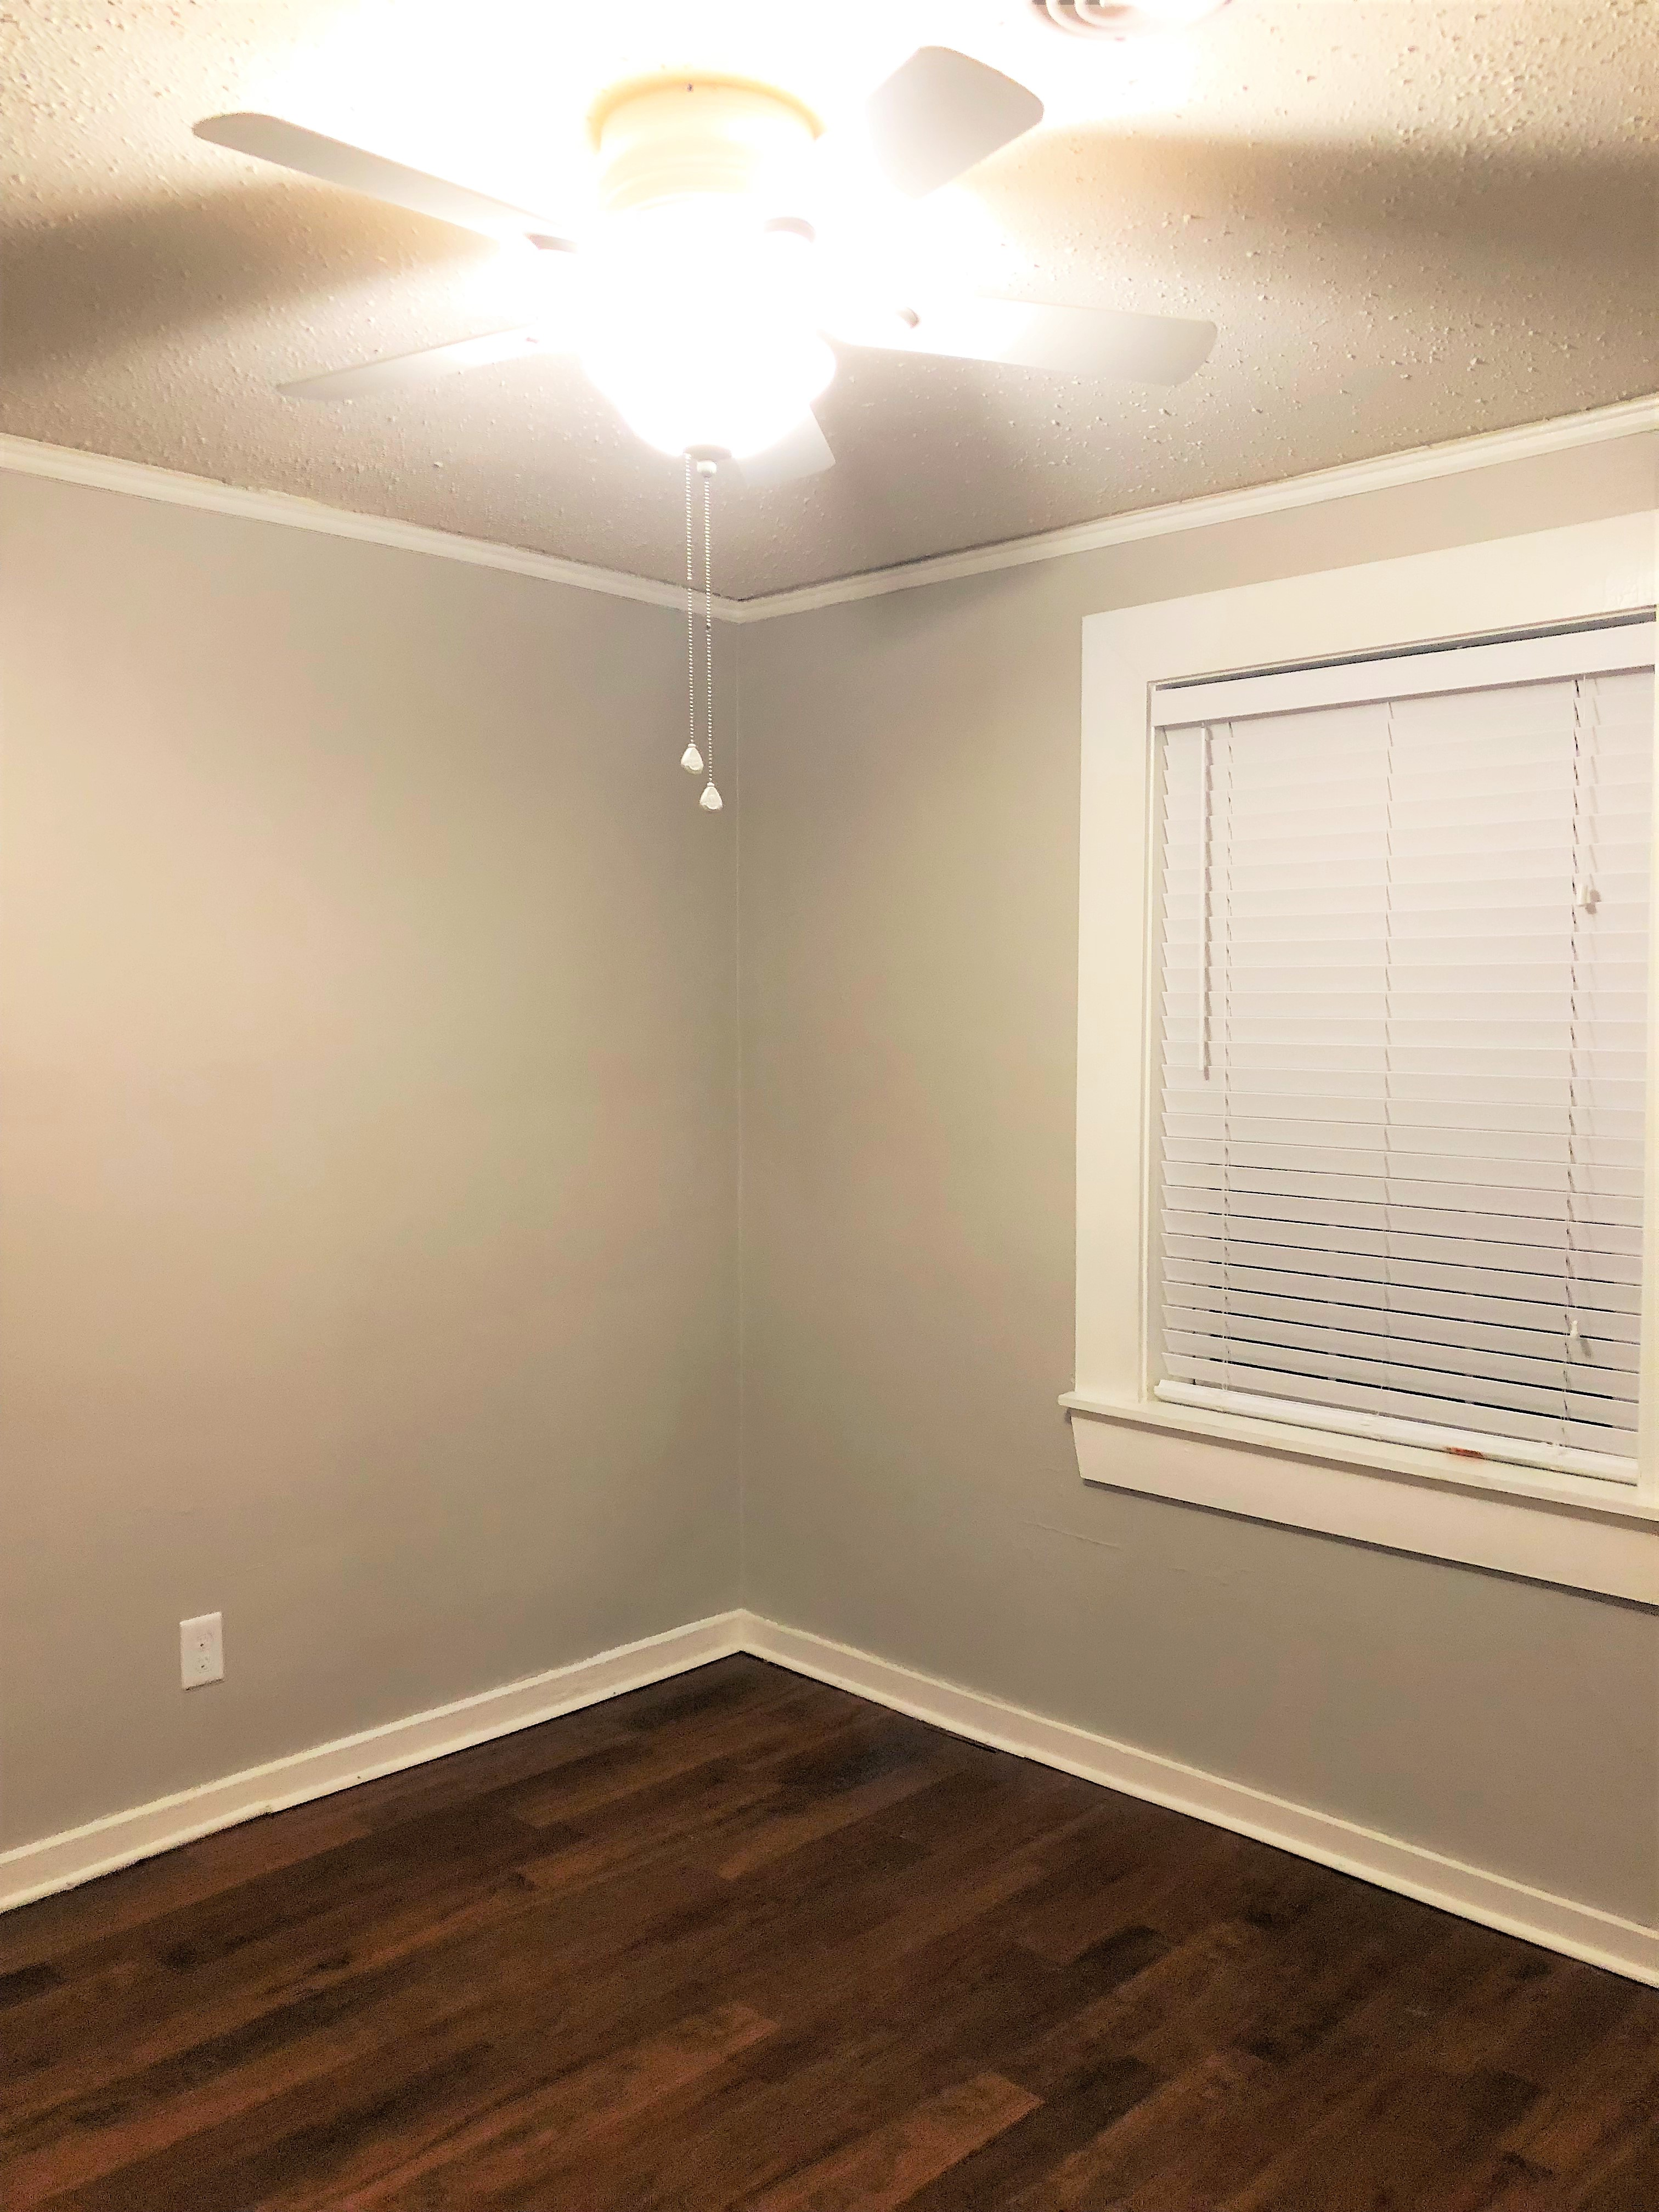 248 South Marion Street,Columbia,South Carolina 29205,2 Bedrooms Bedrooms,1 BathroomBathrooms,Apartment,South Marion Street,1251